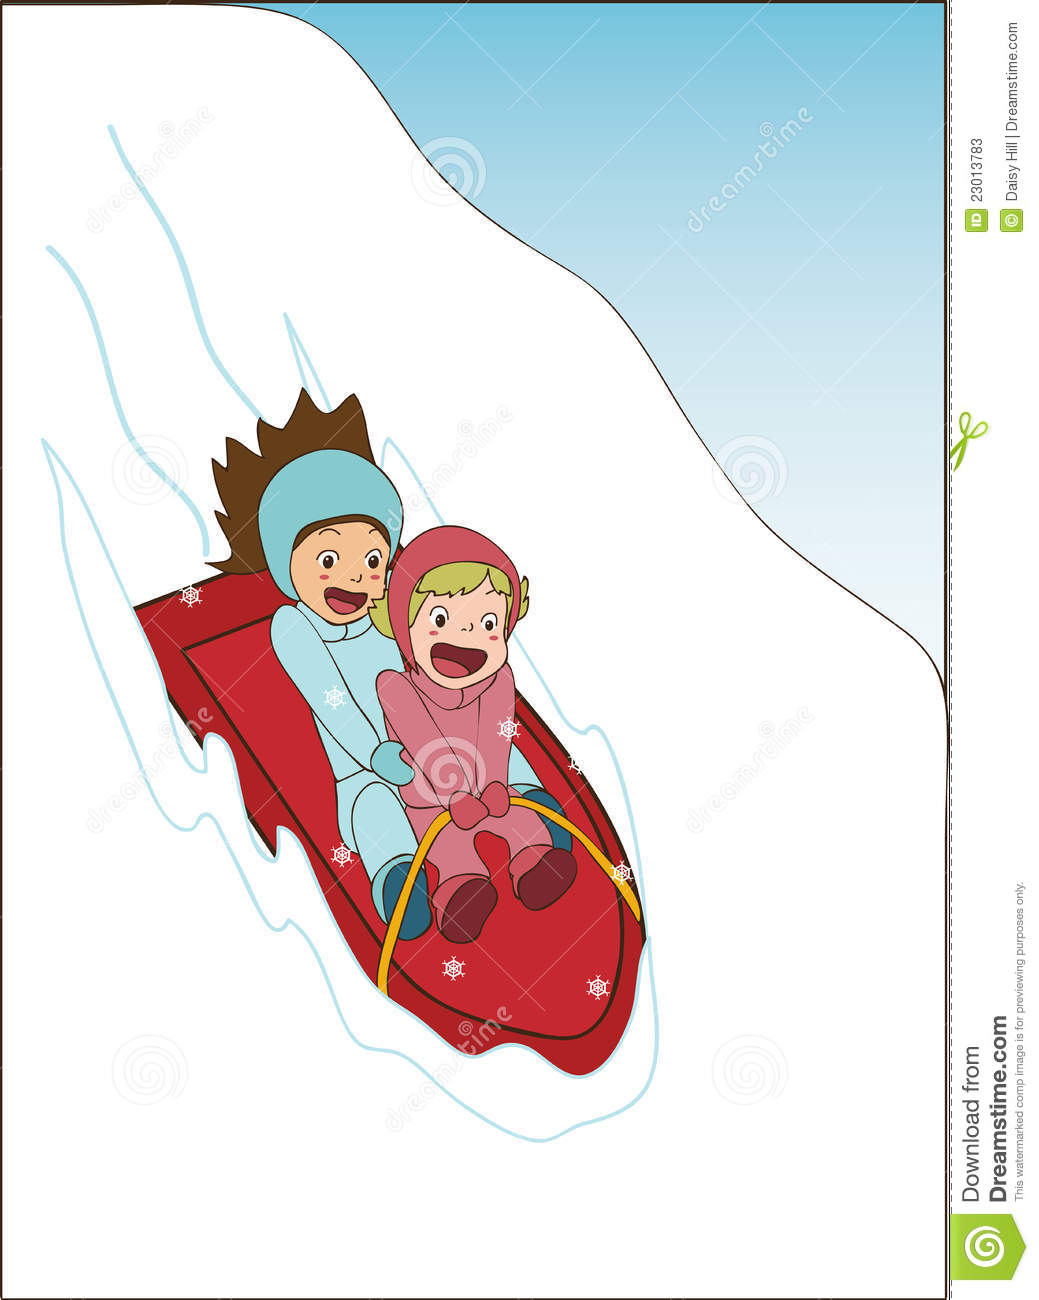 Kids Sledding Animated